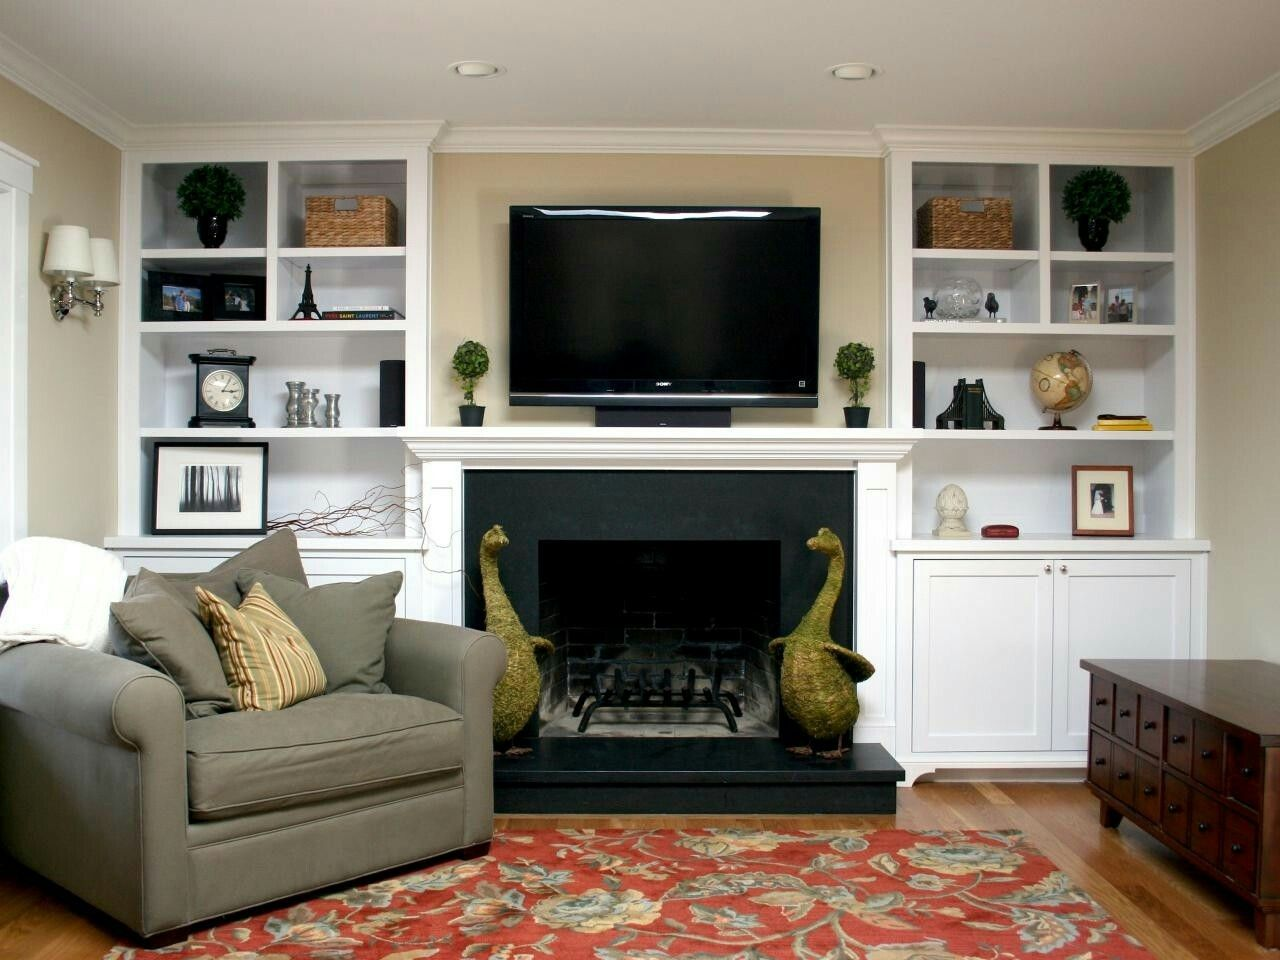 Simple White Built In Bookshelves With Lower Cabinets For Both Sides